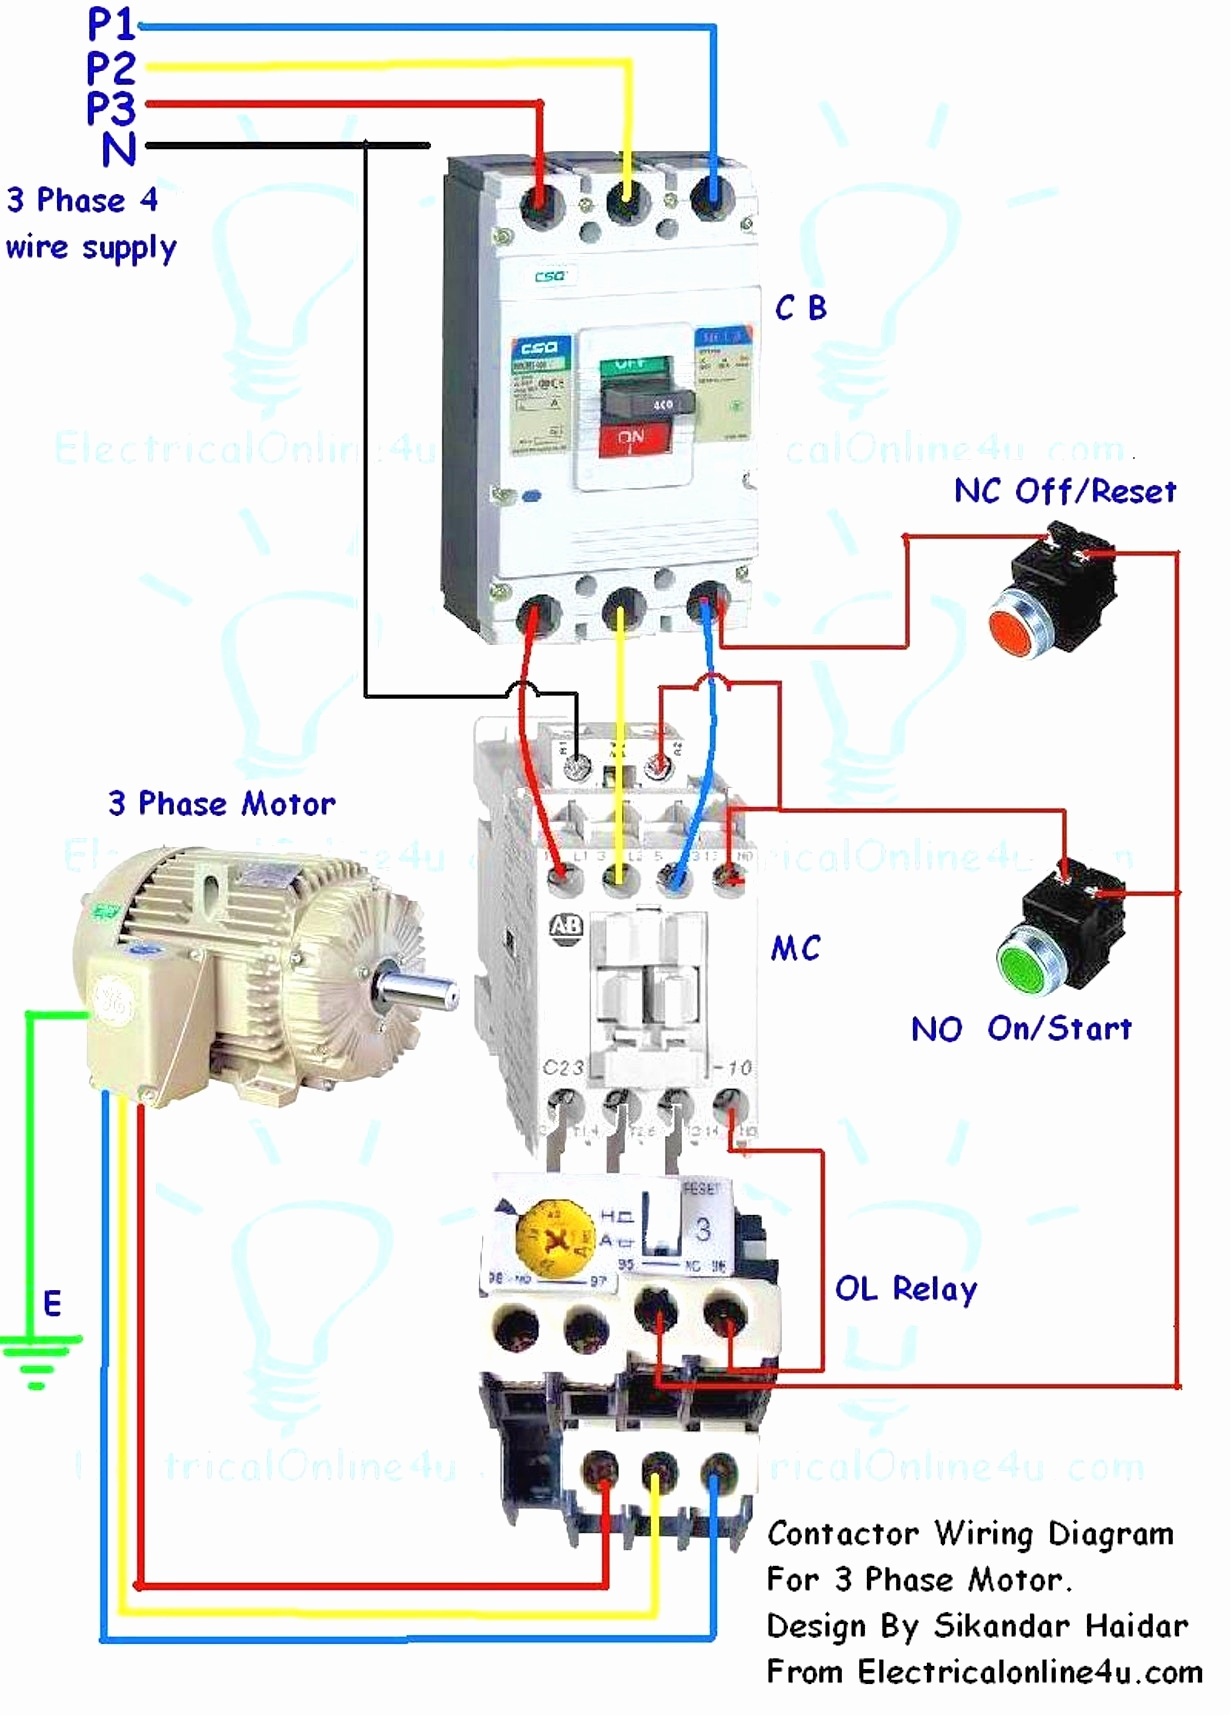 3 phase motor contactor wiring diagram Download-Full Size of Wiring Diagram Three Phase Electrical Wiring Diagram Luxury No Nc Contactor Wiring 11-j